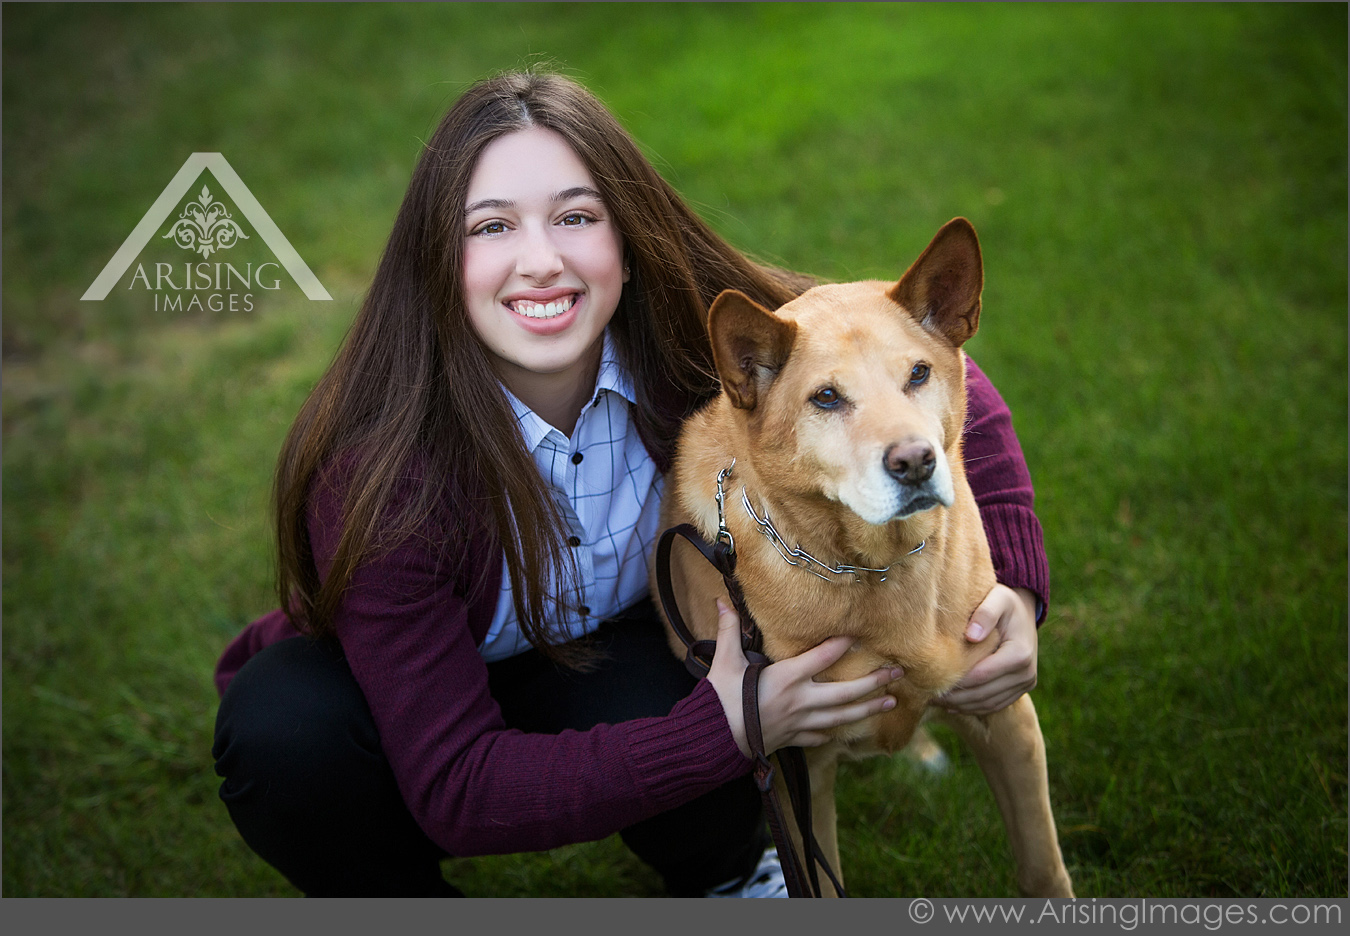 Cool senior pictures with pets